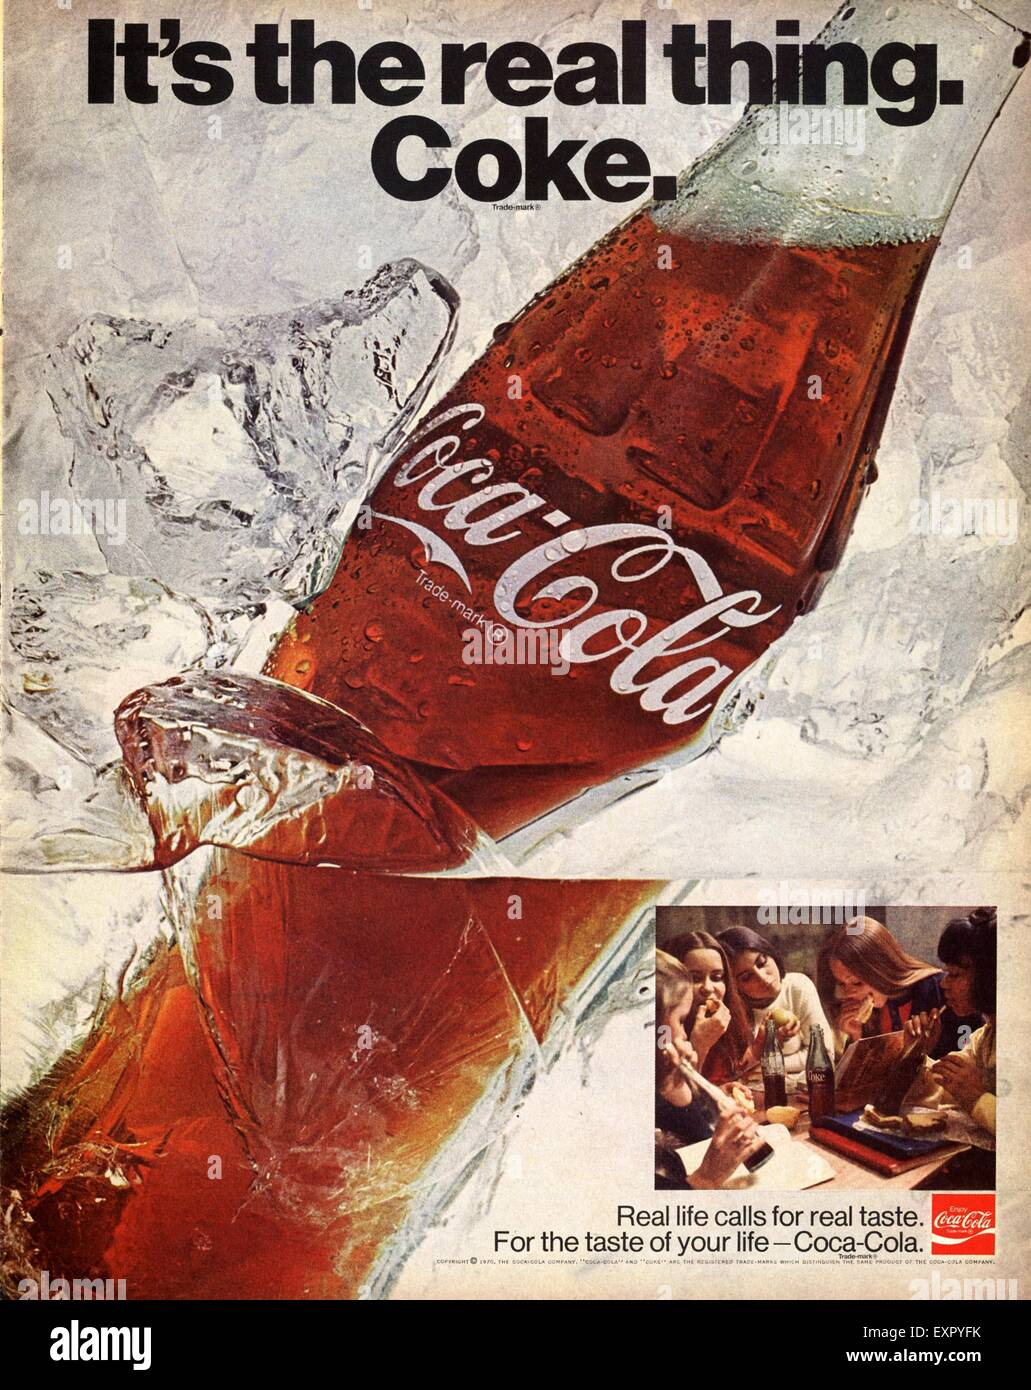 1970s USA Coca-Cola Magazine Advert Stock Photo: 85327079